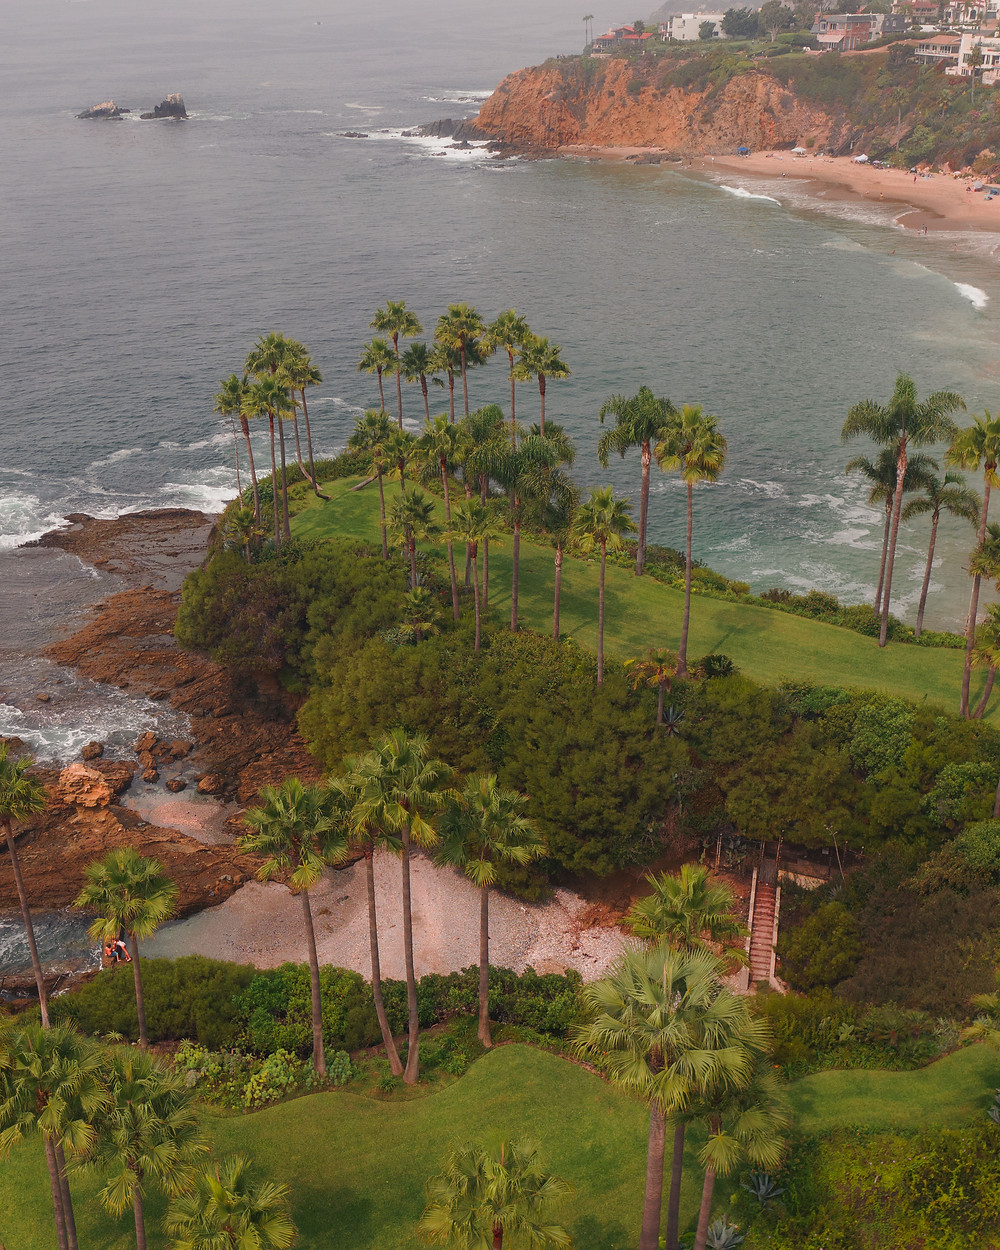 Shaws Cove between beautiful lush green cliffs and palm trees